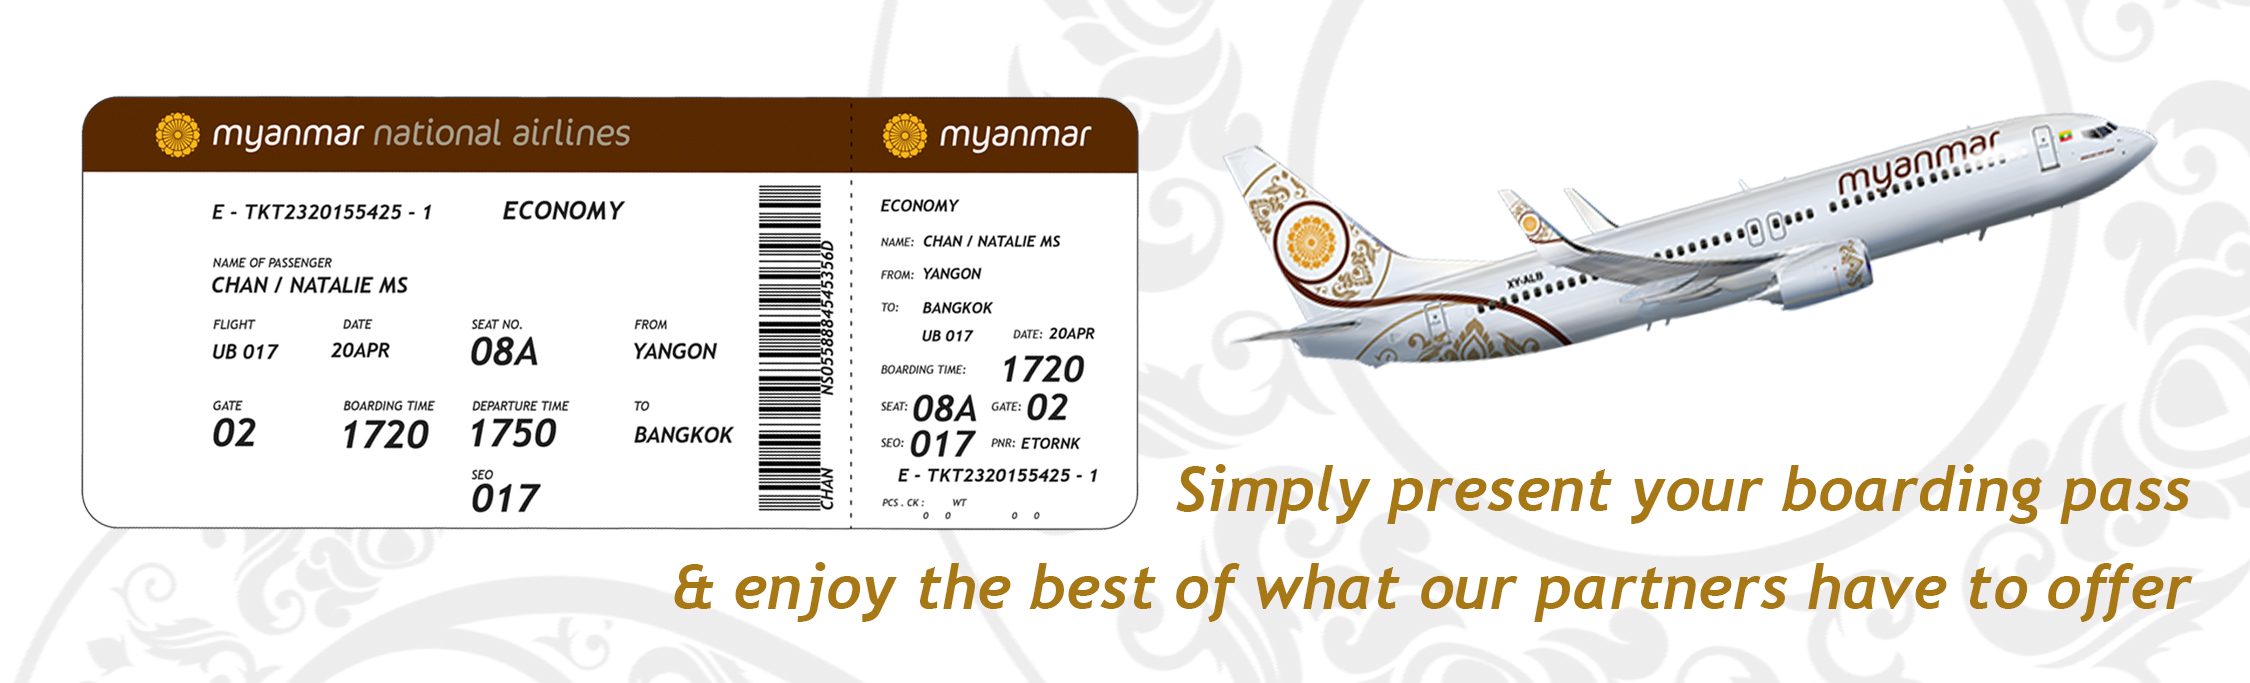 Myanmar National Airlines Boarding Pass Privilege Offer